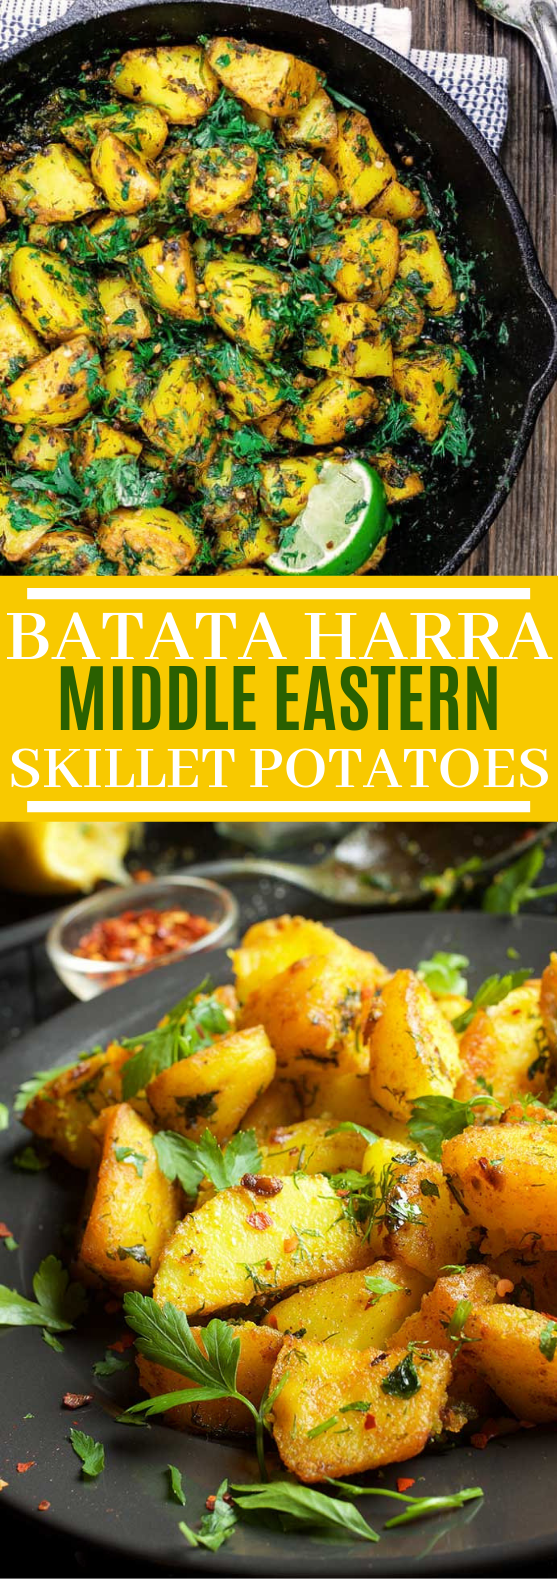 Batata Harra: Middle Eastern Skillet Potatoes #vegan #glutenfree